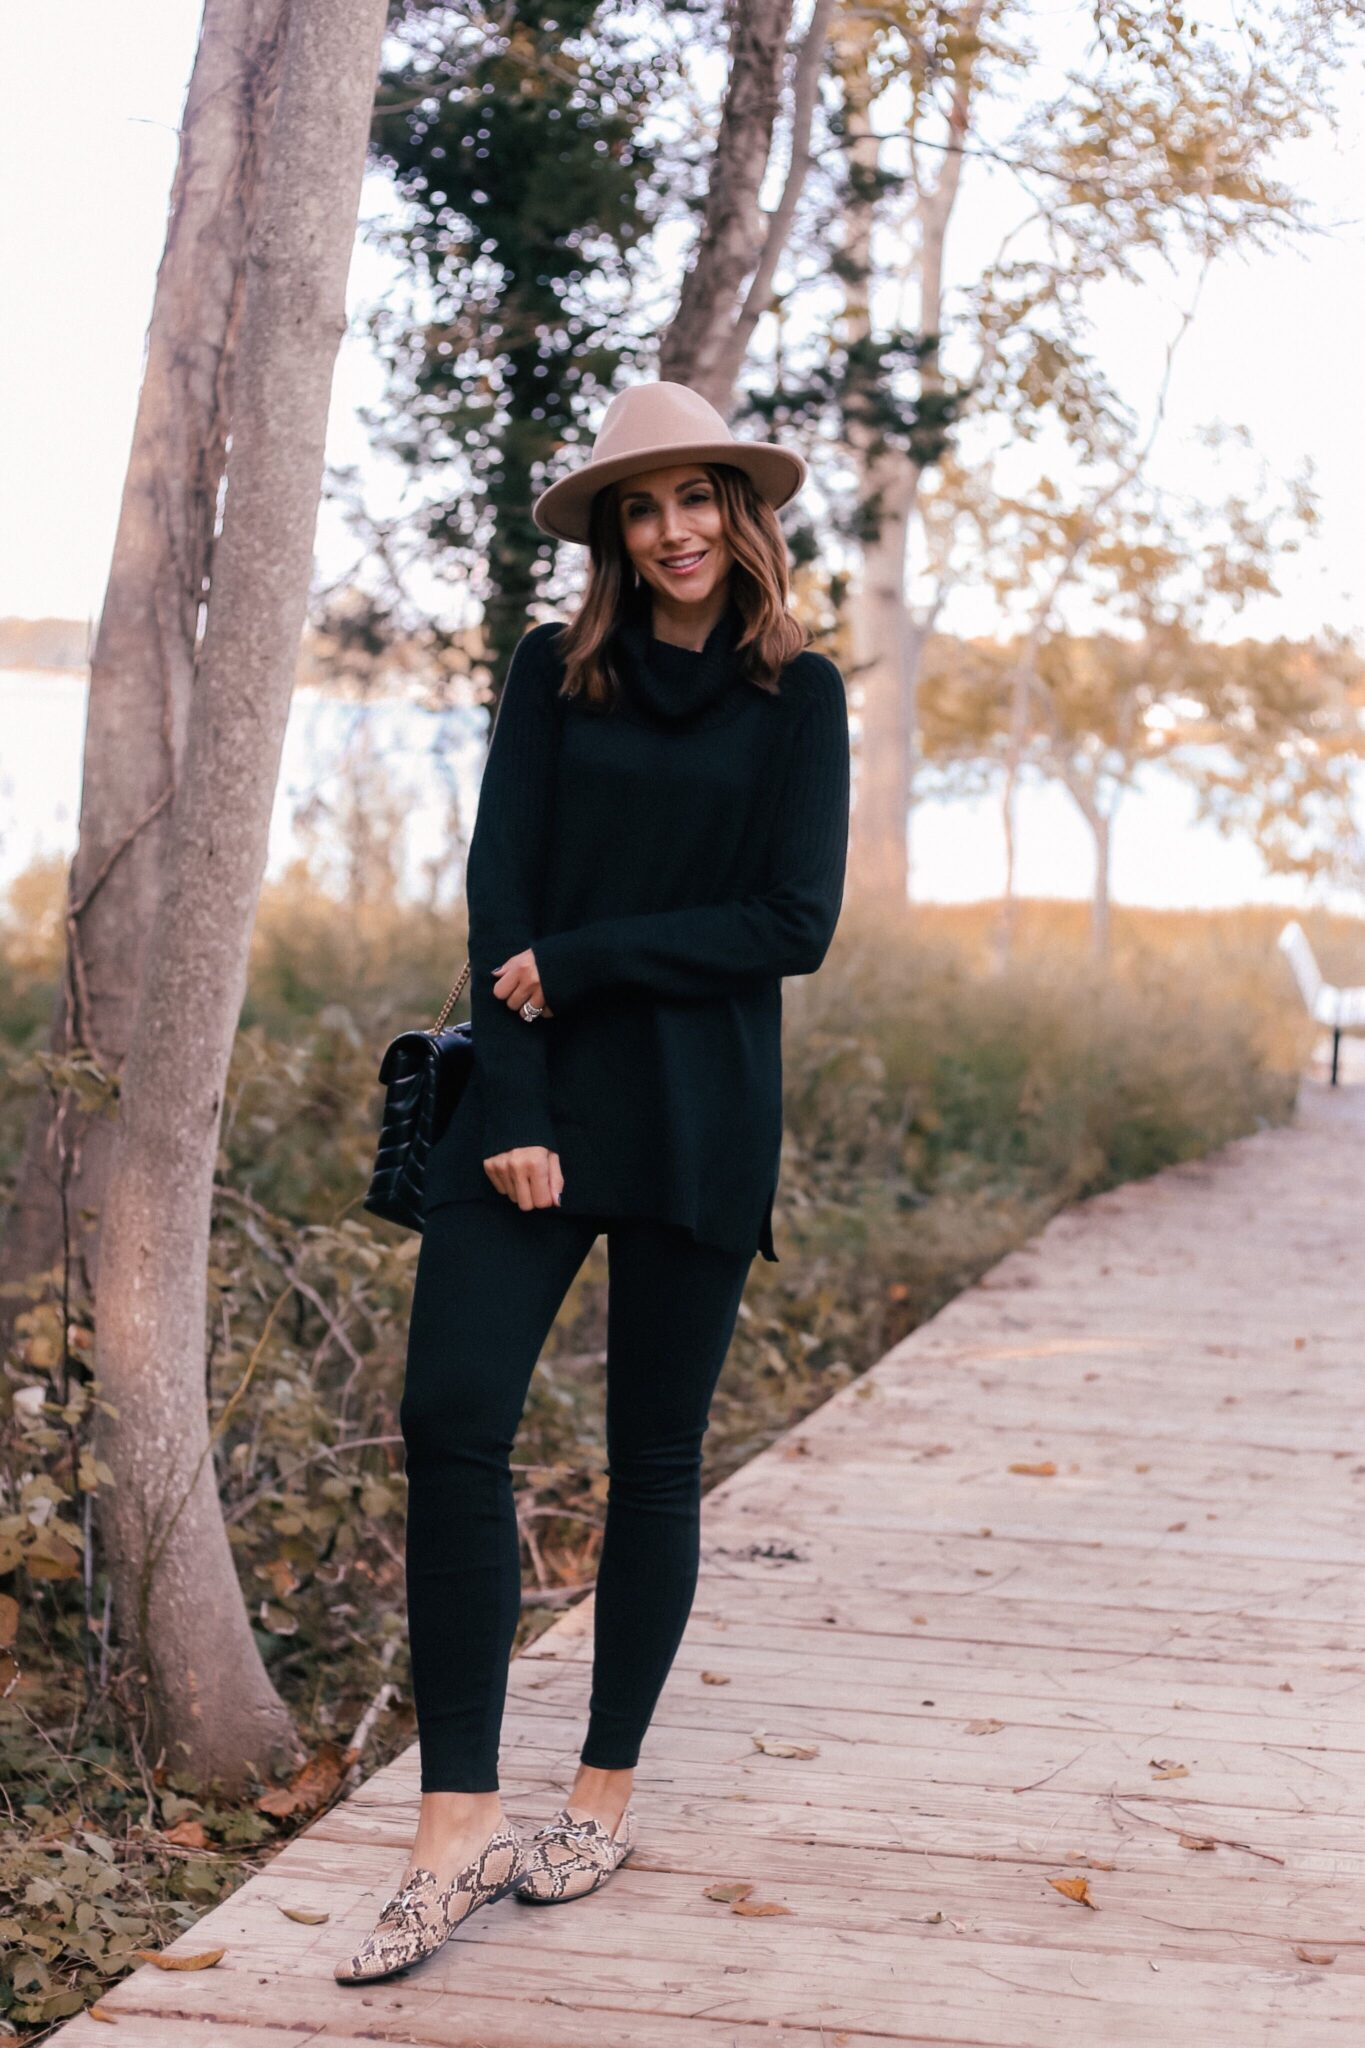 Walmart Sweater and Jeggings, fall outfit